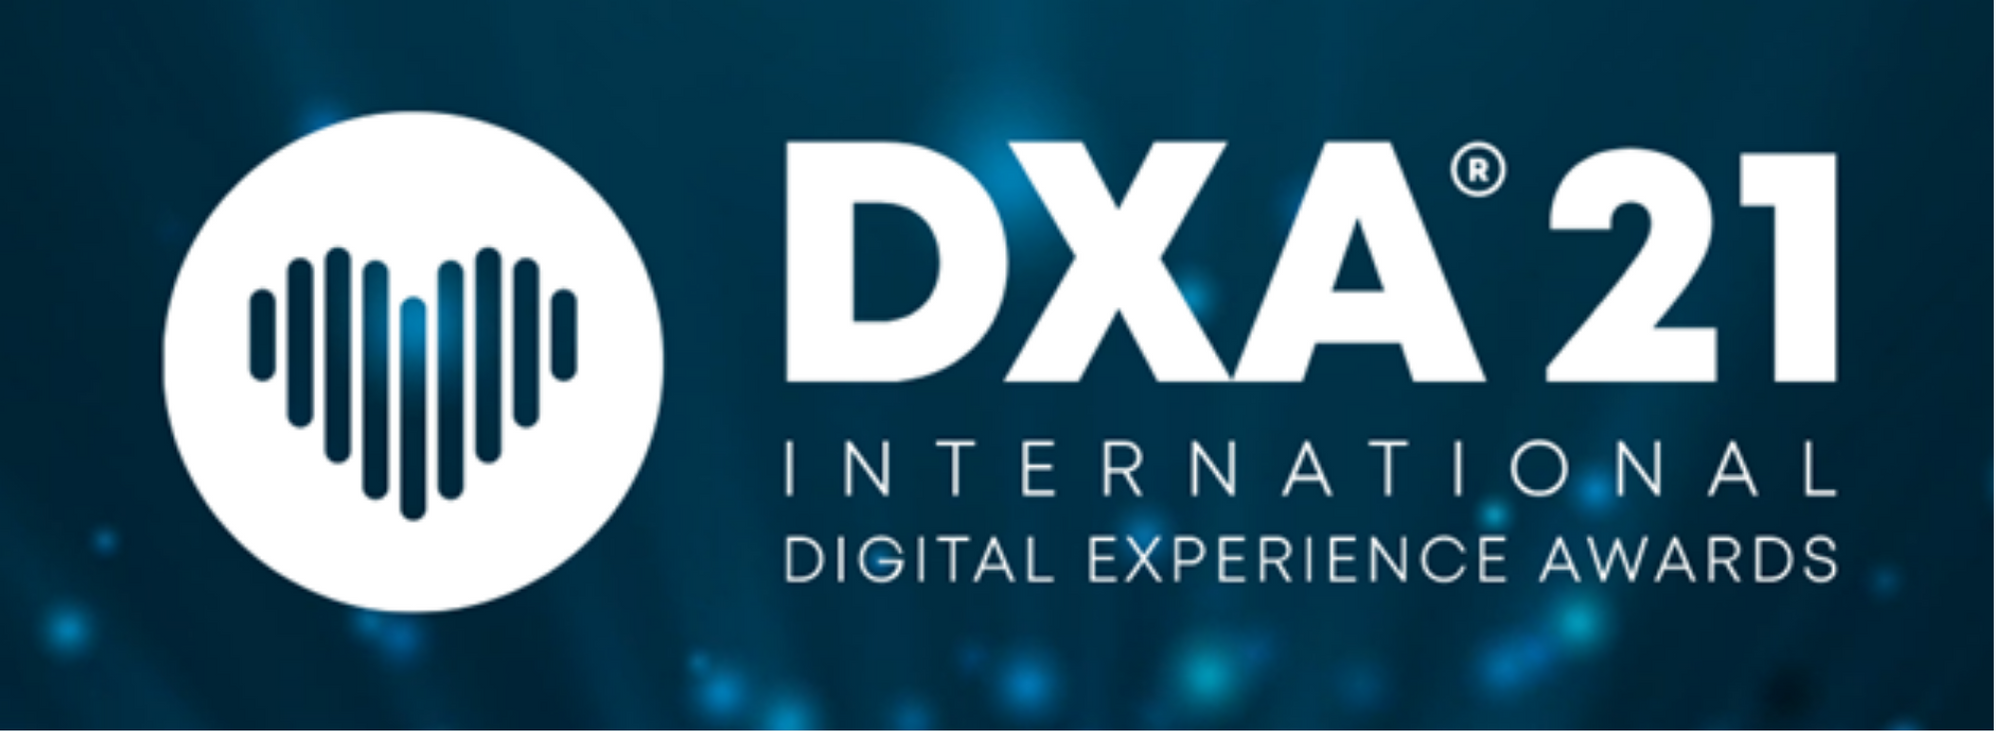 The International Digital Experience Awards 2021 are now open